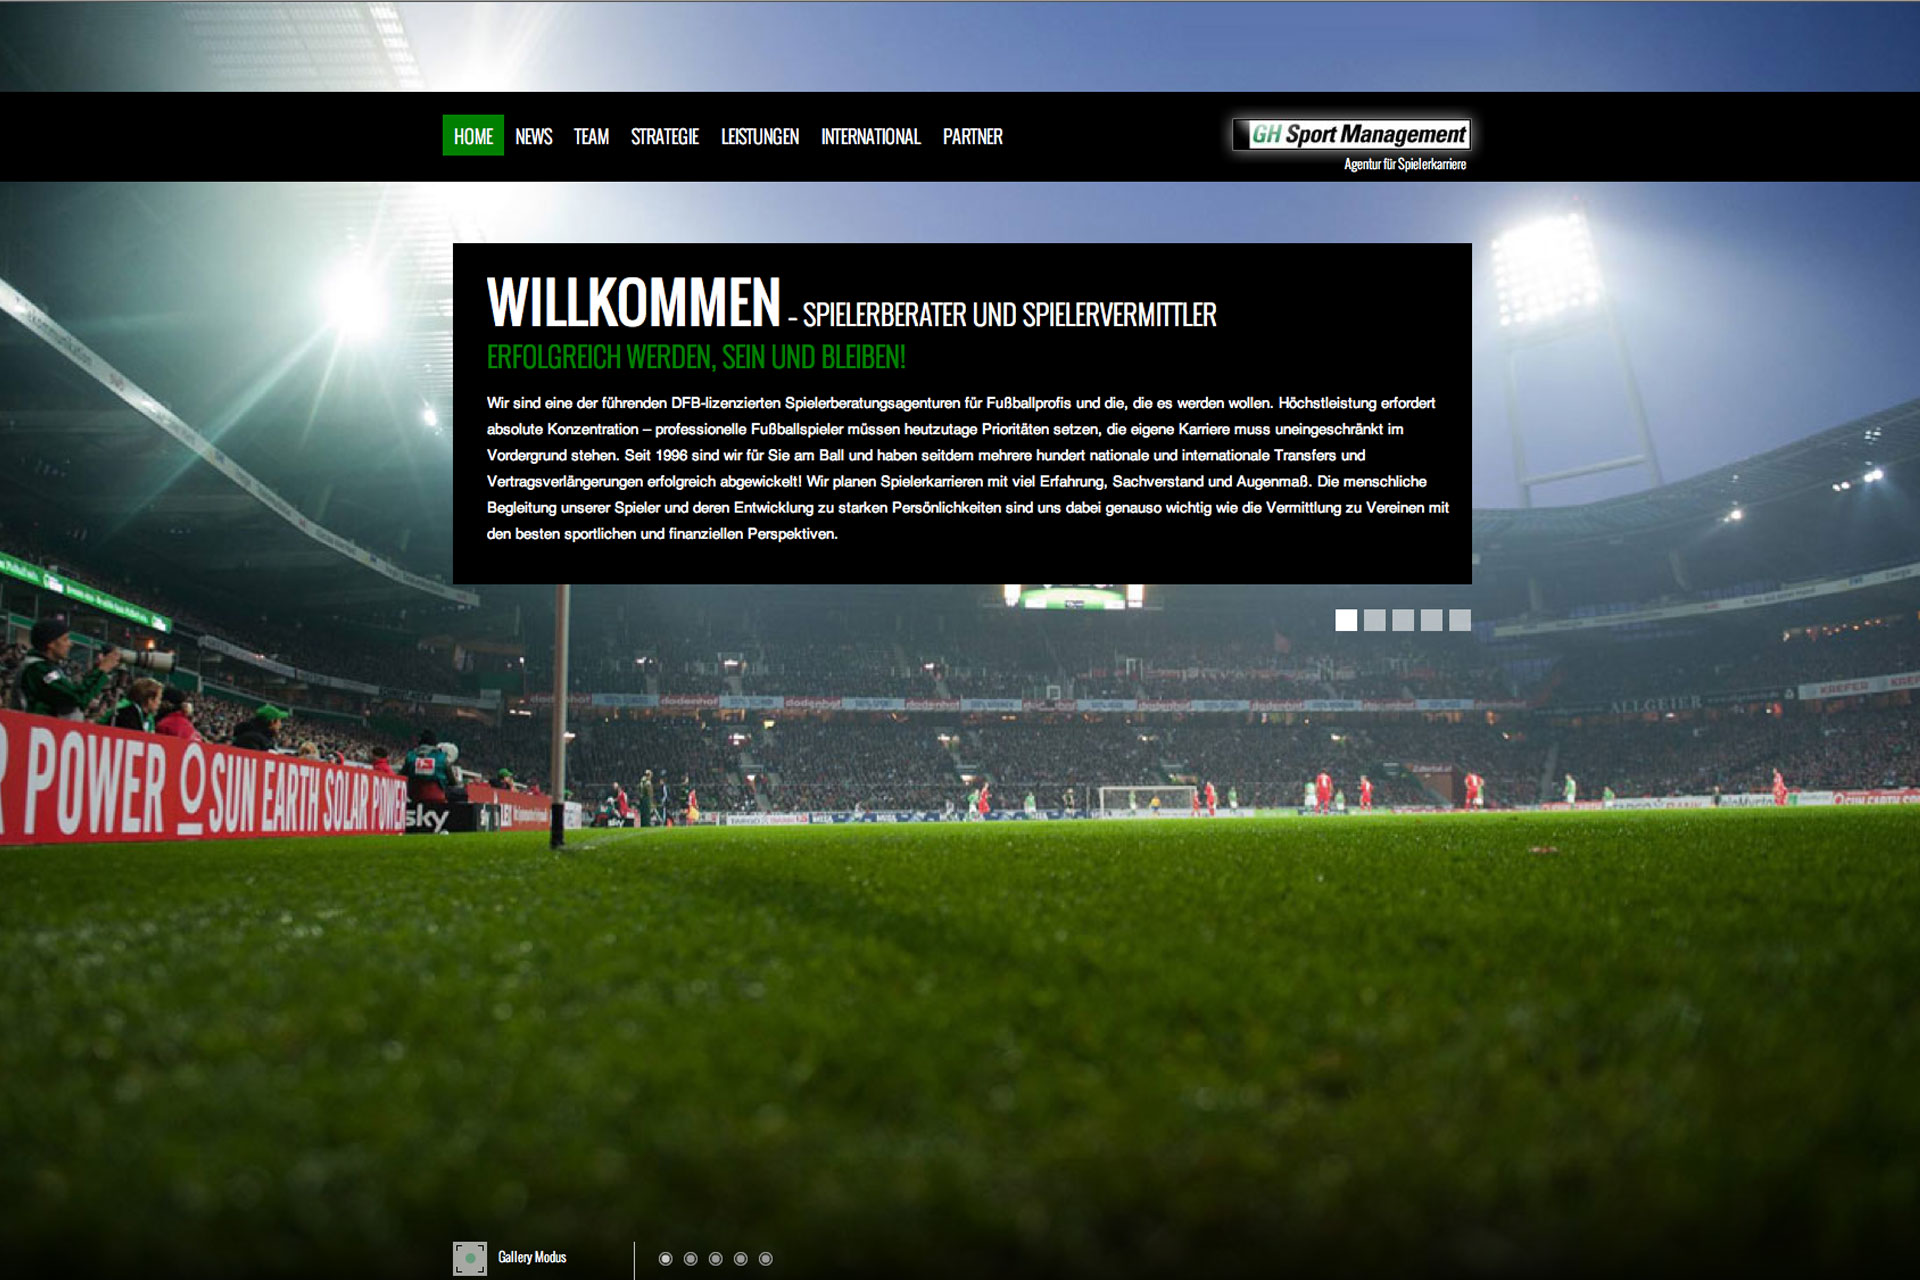 Web Design //  Agency: web.surfers // Client: GH Sportsmanagement // Branch: Consulting and Sport